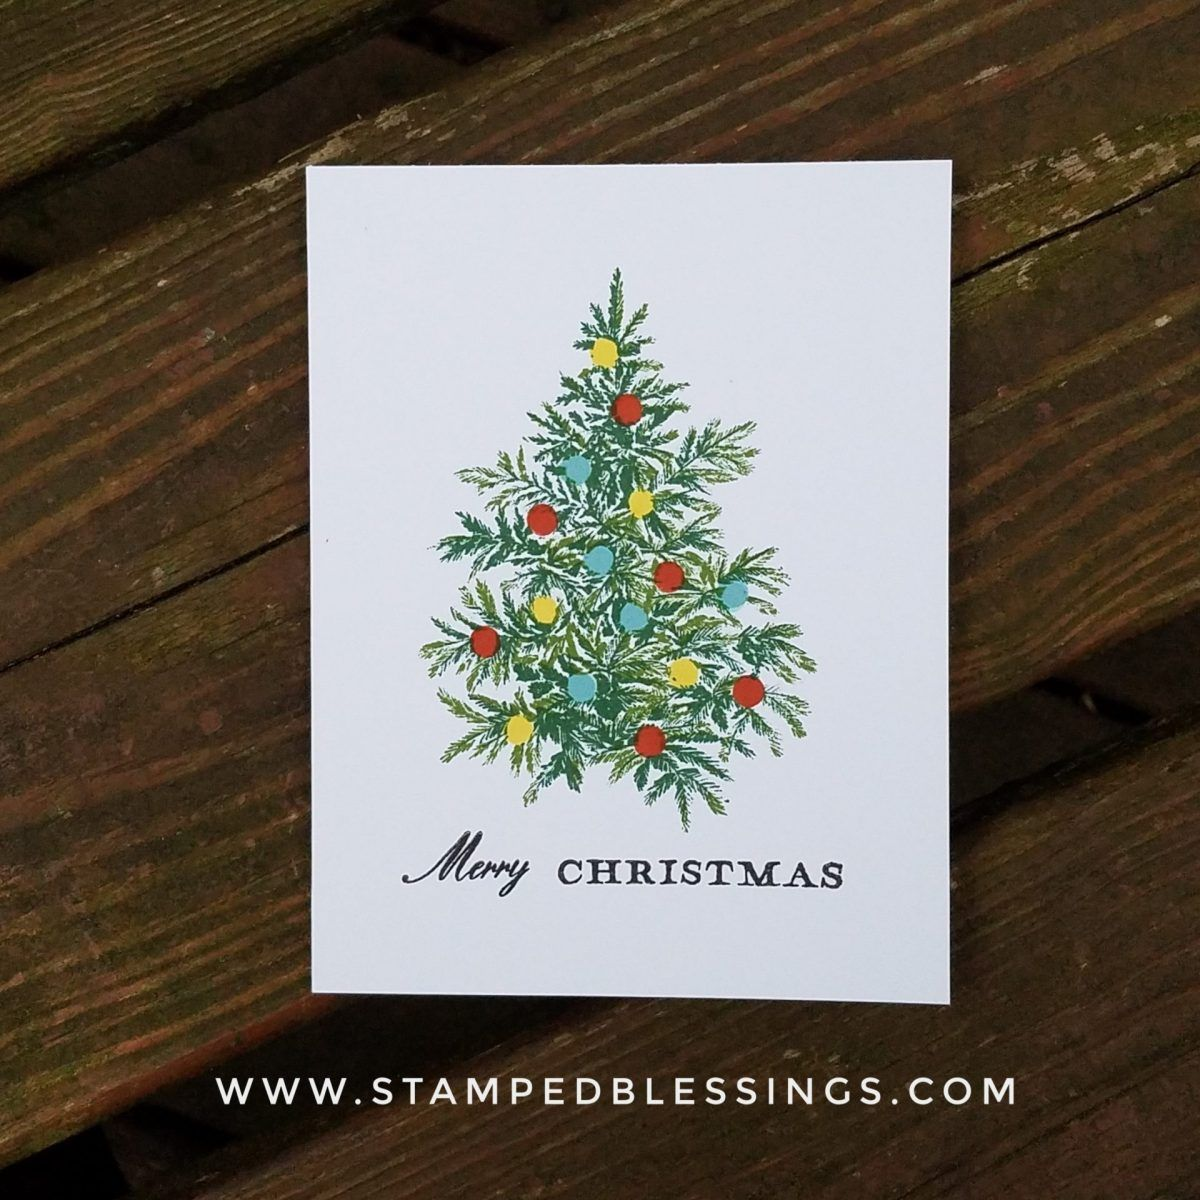 Ctmh Merry Christmas Tree Stamped Blessings Christmas Tree Themes Christmas Stamps Tree Stamp